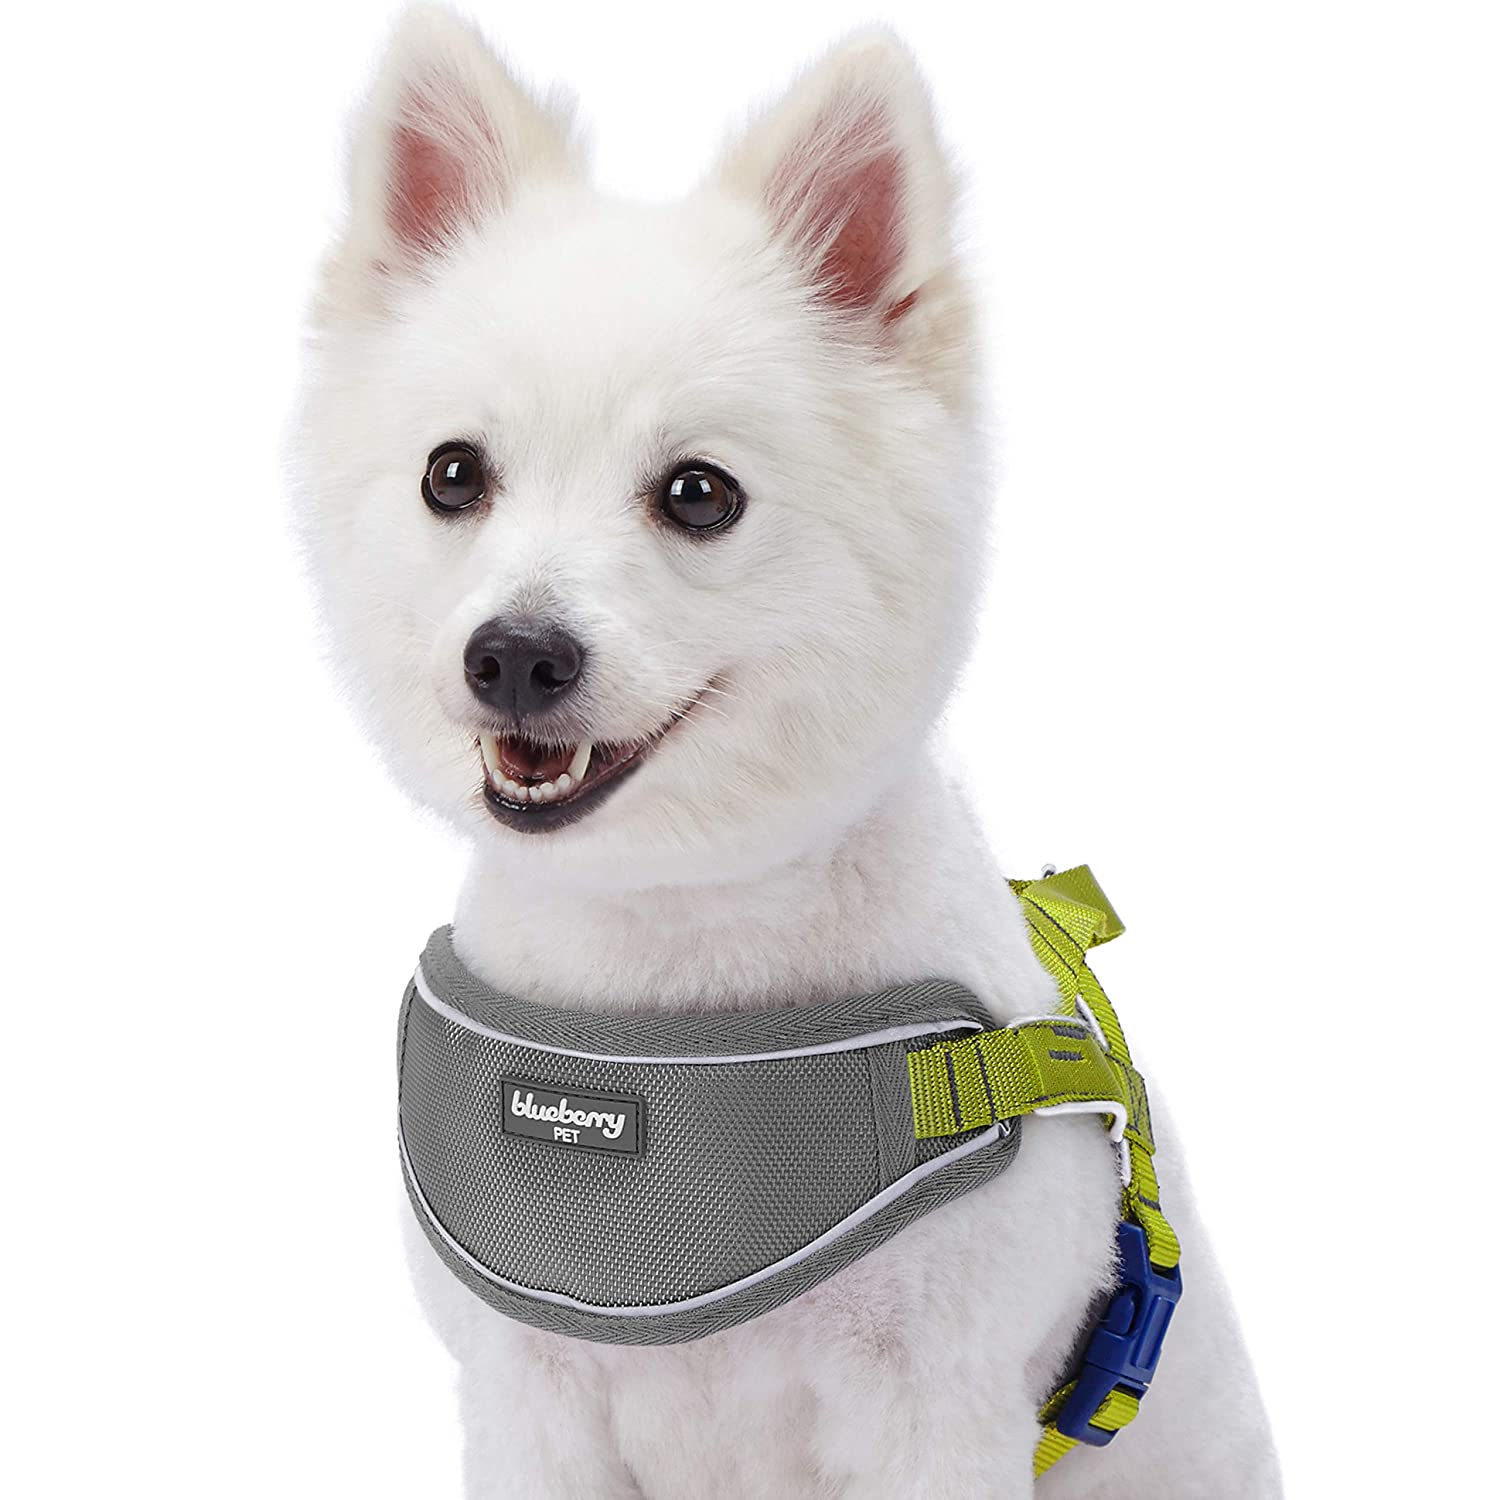 Citrus Lime (20.5\ Citrus Lime (20.5\ blueeberry Pet New 5 colors Soft & Comfy 3M Reflective Strips Padded Dog Harness Vest, Chest Girth 20.5  26 , Citrus Lime, Medium, Nylon Adjustable Training Harnesses for Dogs